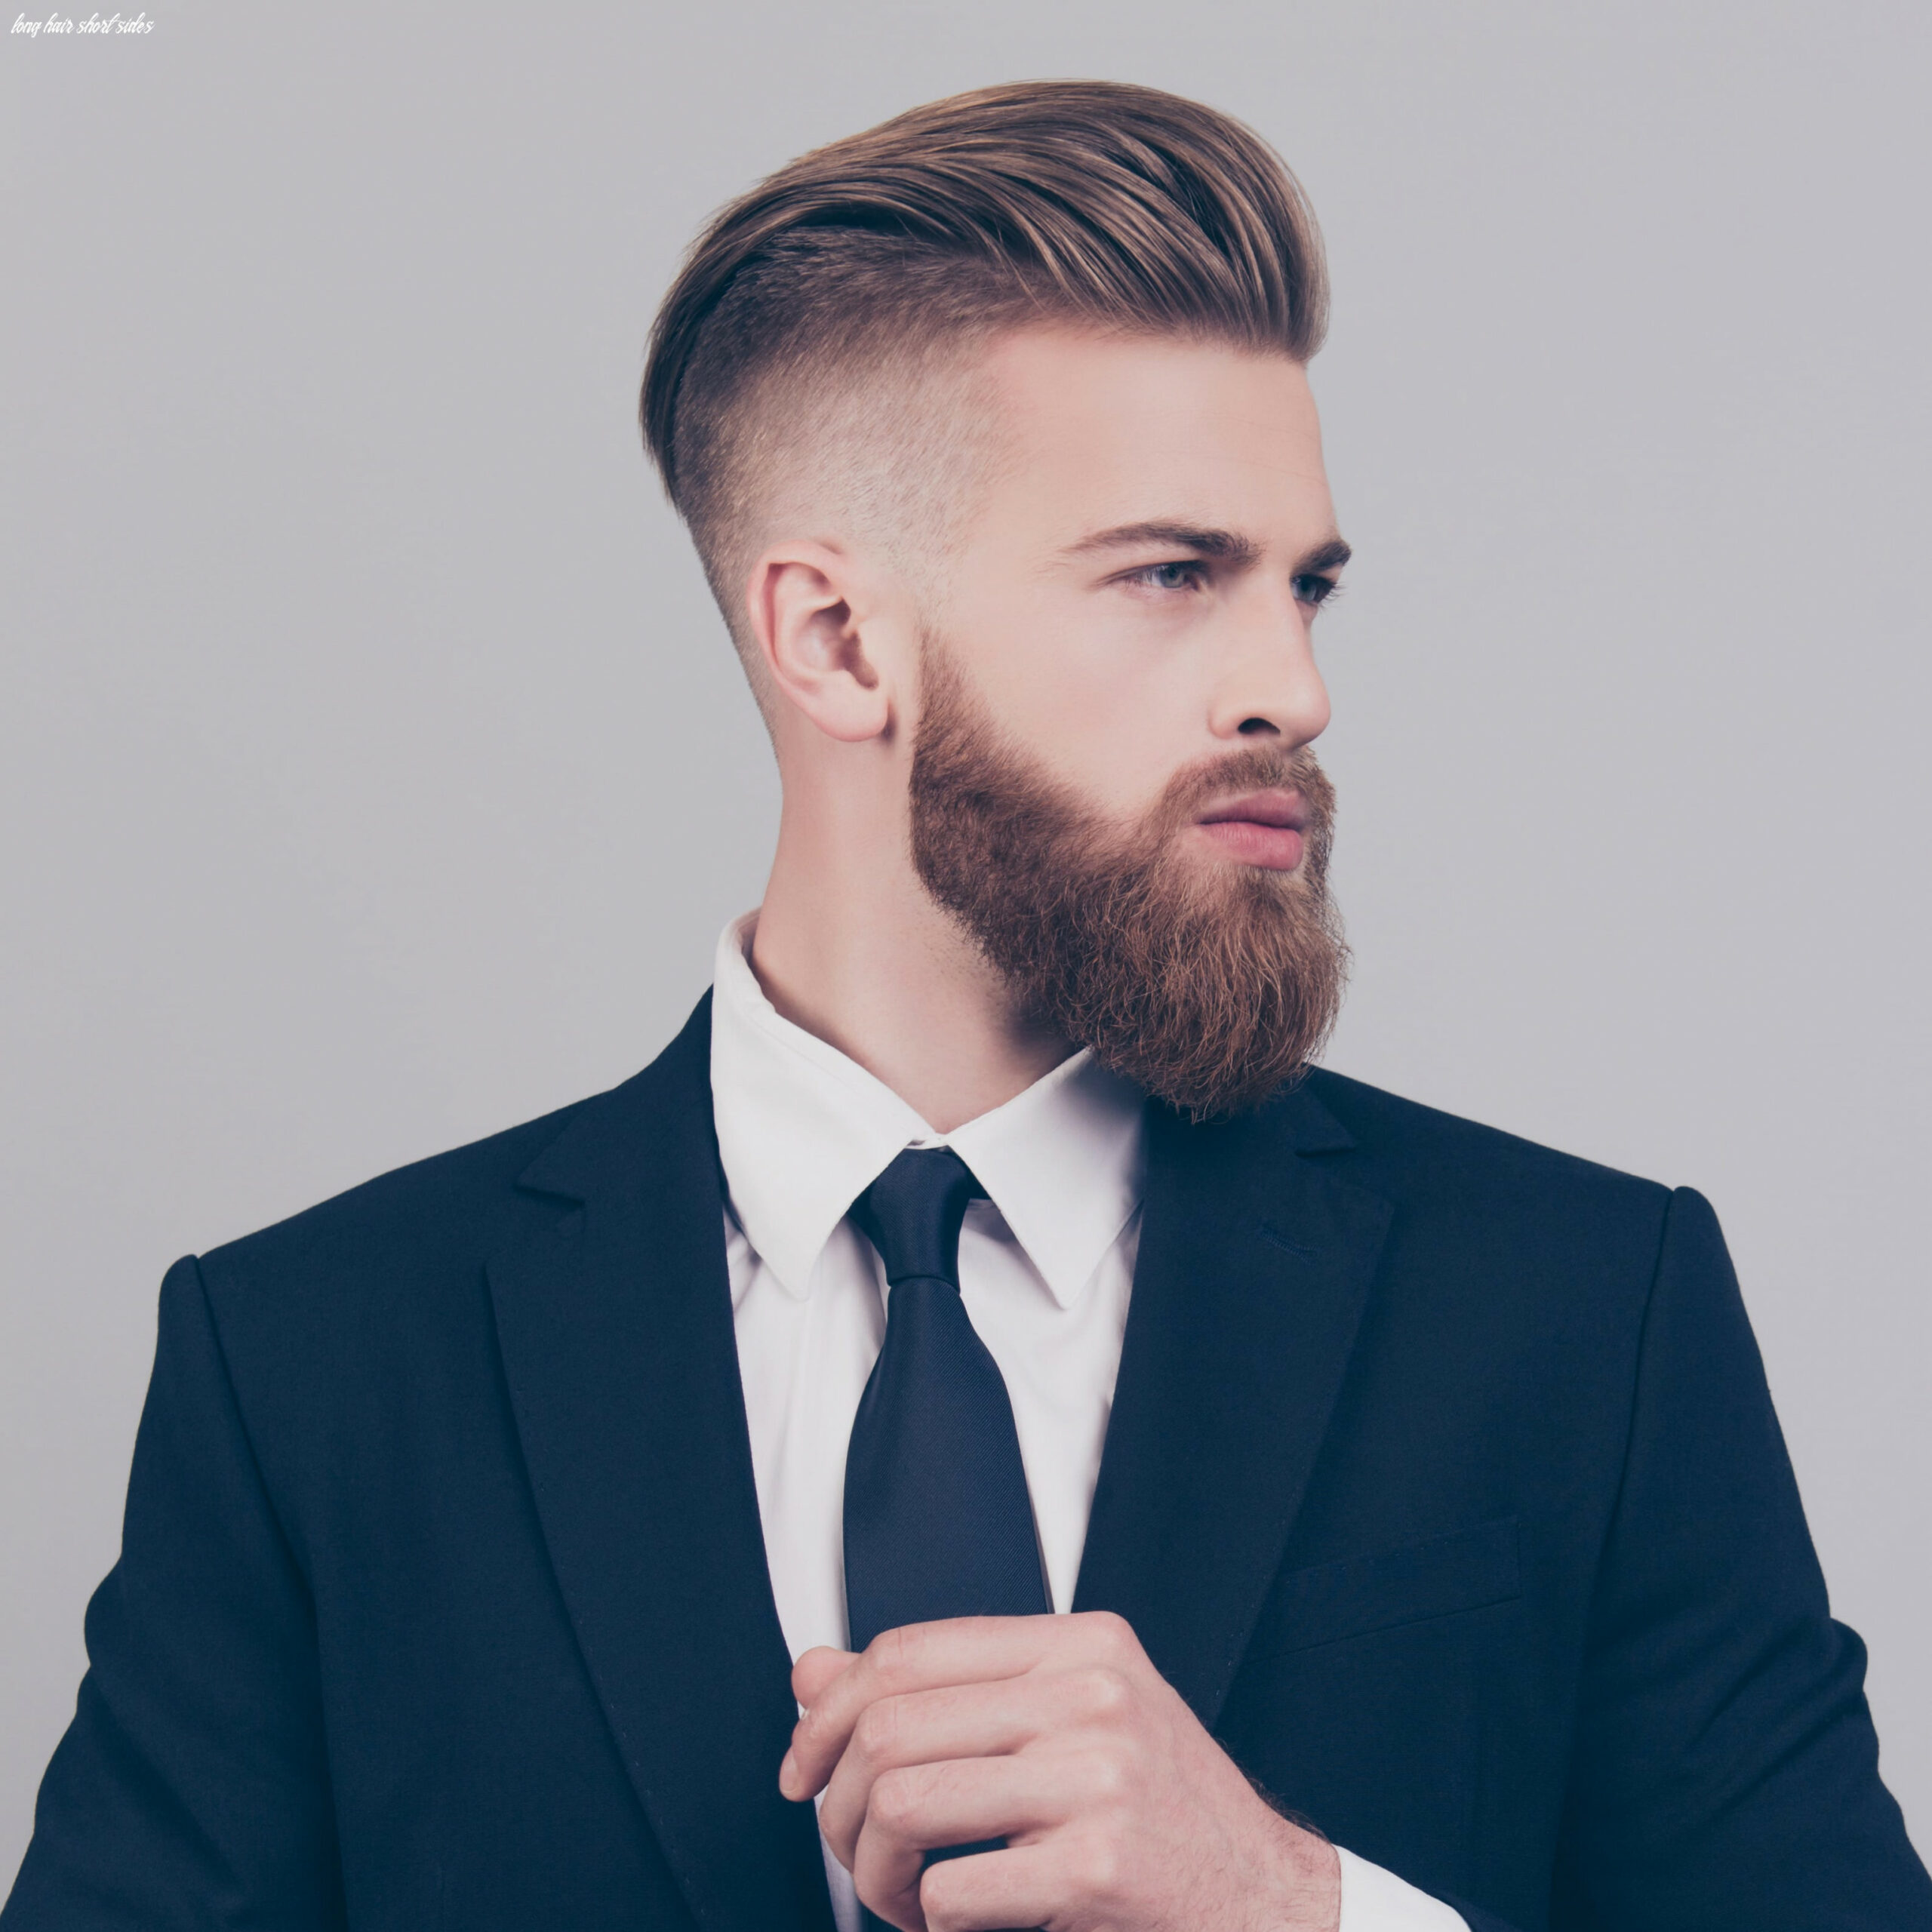 The best of both worlds: short sides & long top | haircut inspiration long hair short sides